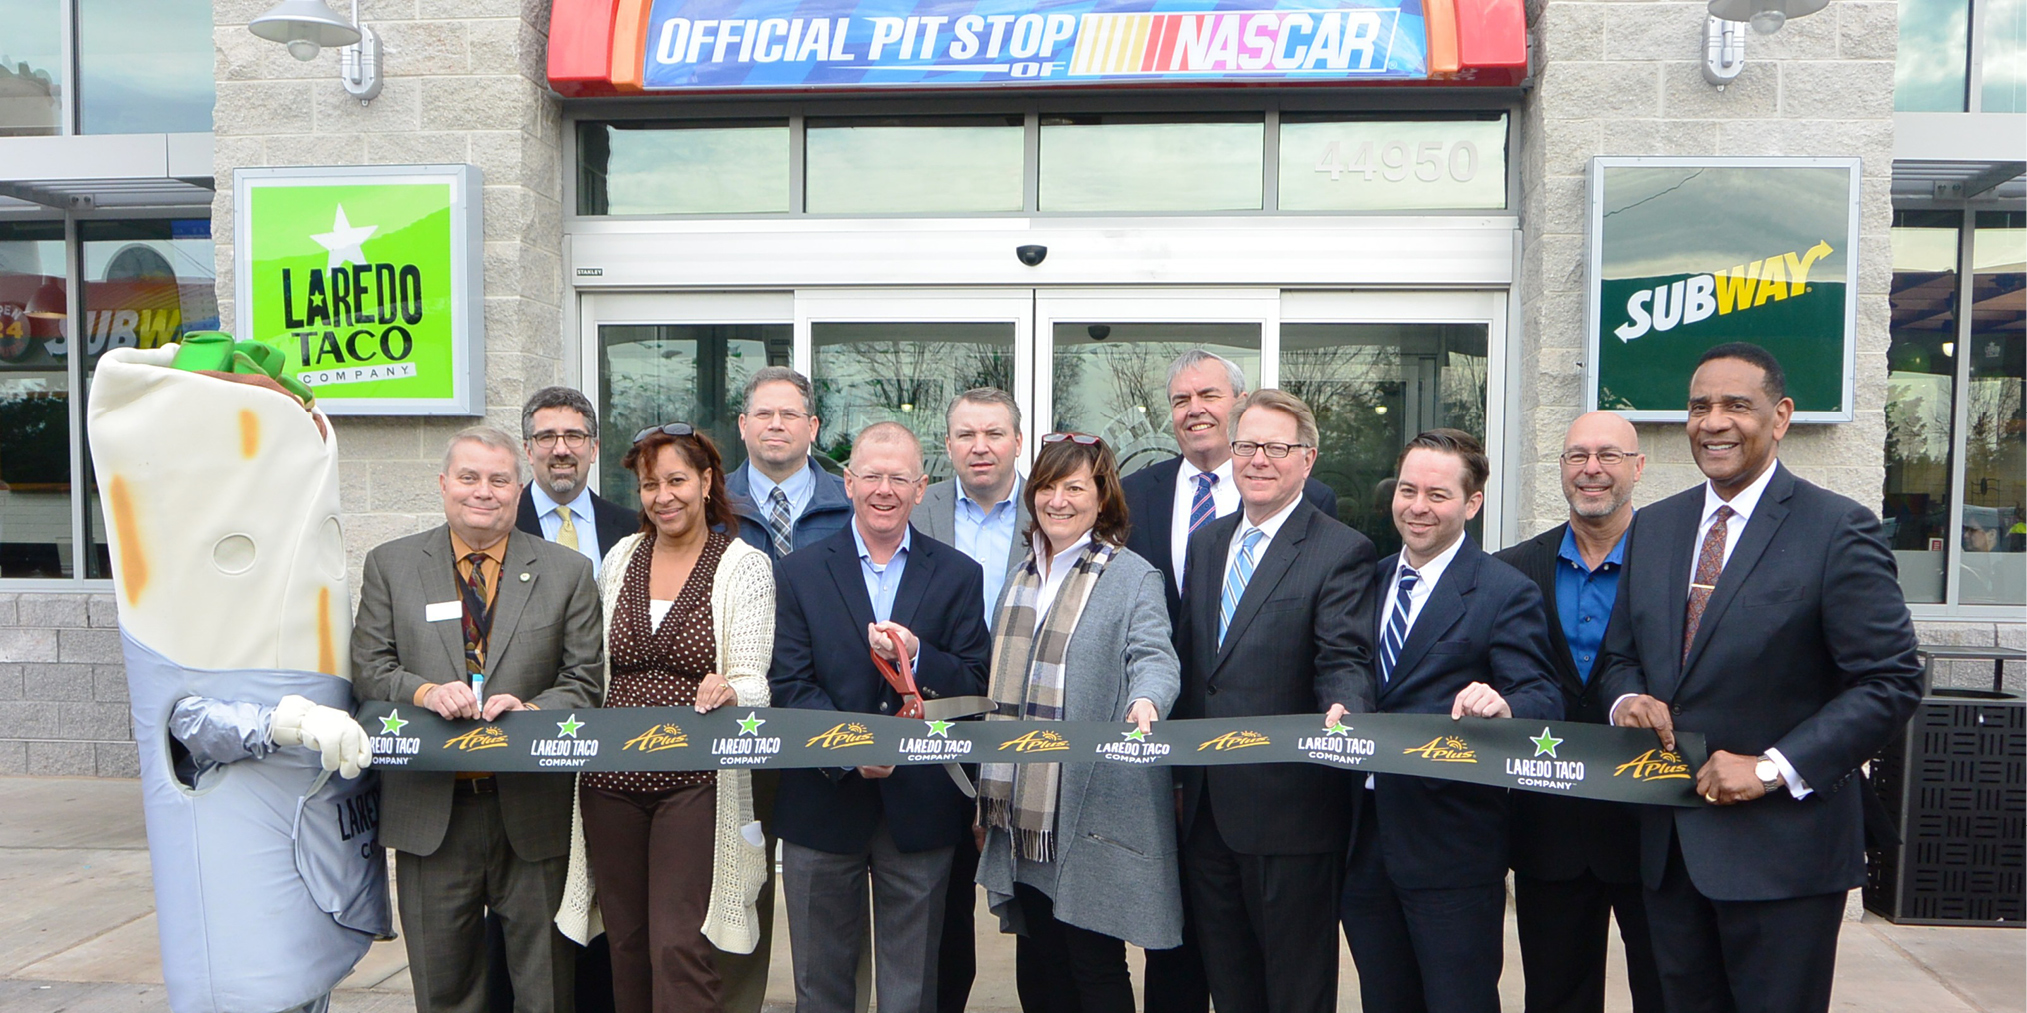 Sunoco Ribbon Cutting: Rich Bensinger, Loudoun County Department of Economic Development Business Development Manager; Jeff Shields, Sunoco LP Communications Manager; Christel Hair, Capital Area Food Bank Senior Director of Strategic Partnerships and Community Engagement; Chris Beausoleil, Dulles International Airport Project Manager; Scot Knox, Sunoco LP Regional Operations Director; Patrick Dillon, Sunoco LP Director of Retail Operations; Ruth Clauser, Sunoco Foundation President; Jack Potter, Airports Authority President and CEO; Jim Poff, Airports Authority Director, Real Estate; Bill Jenkins, Airports Authority Real Estate Analyst; Russell Ramsey, Sunoco LP Area Operations Manager; Jerome L. Davis, Airports Authority Executive Vice President and Chief Revenue Officer